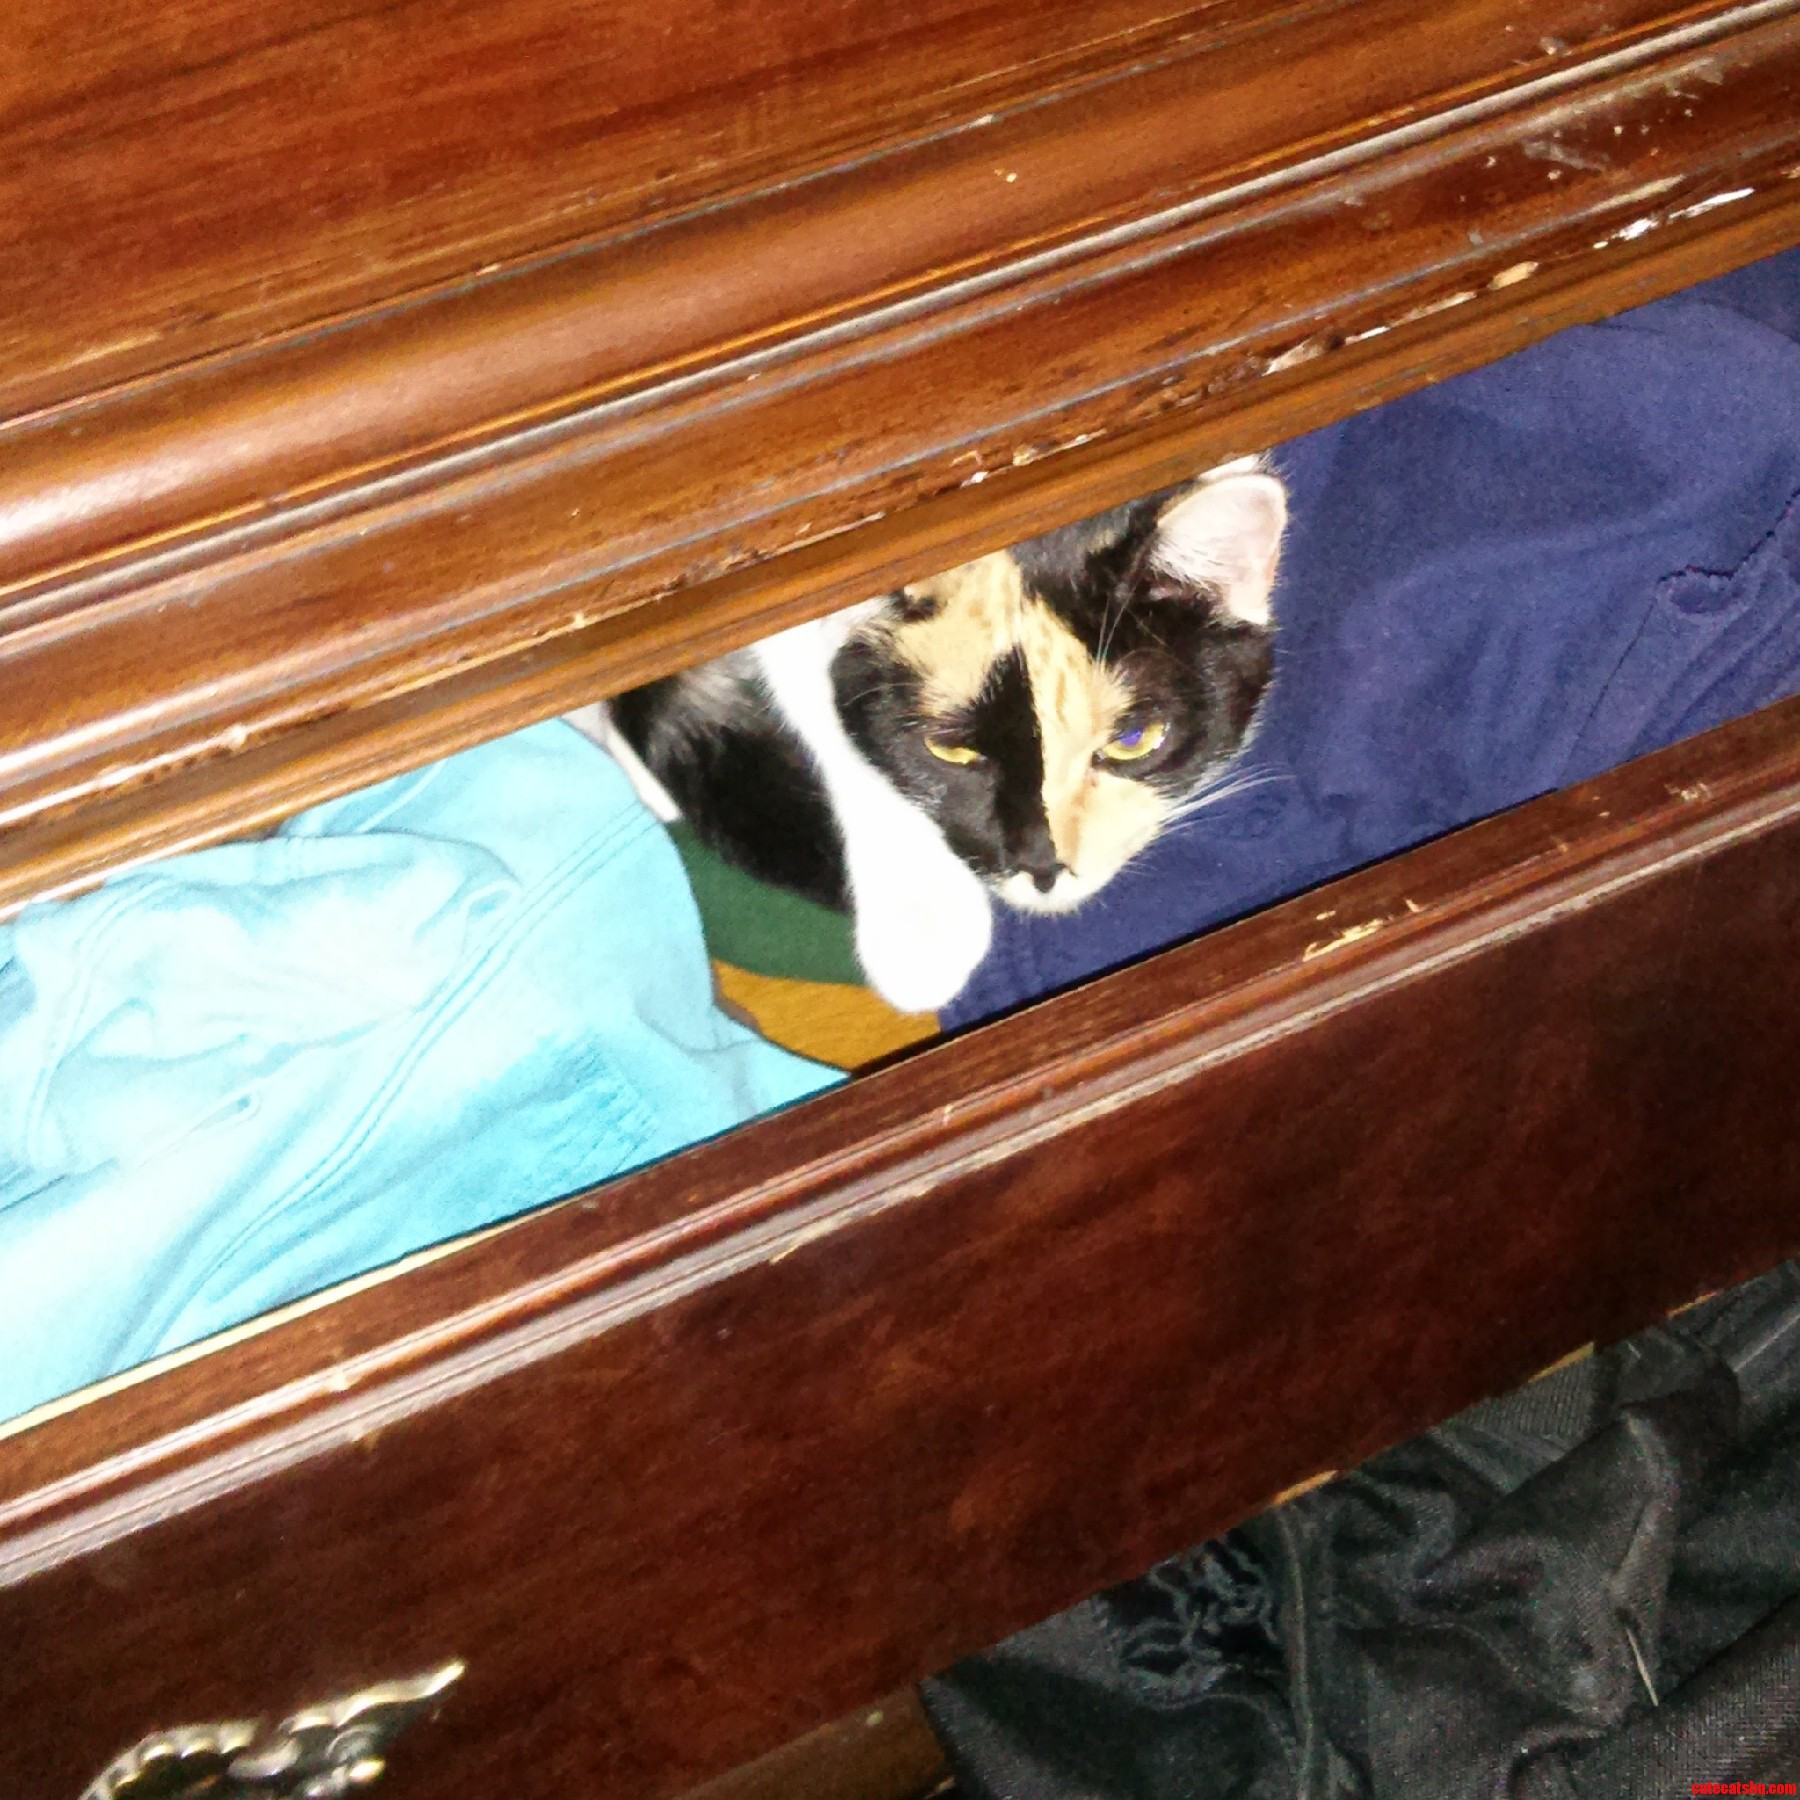 As A New Kitty Adoptee I mLearning I Can T Be Lazy About Closing The Drawers To Check The Closet.